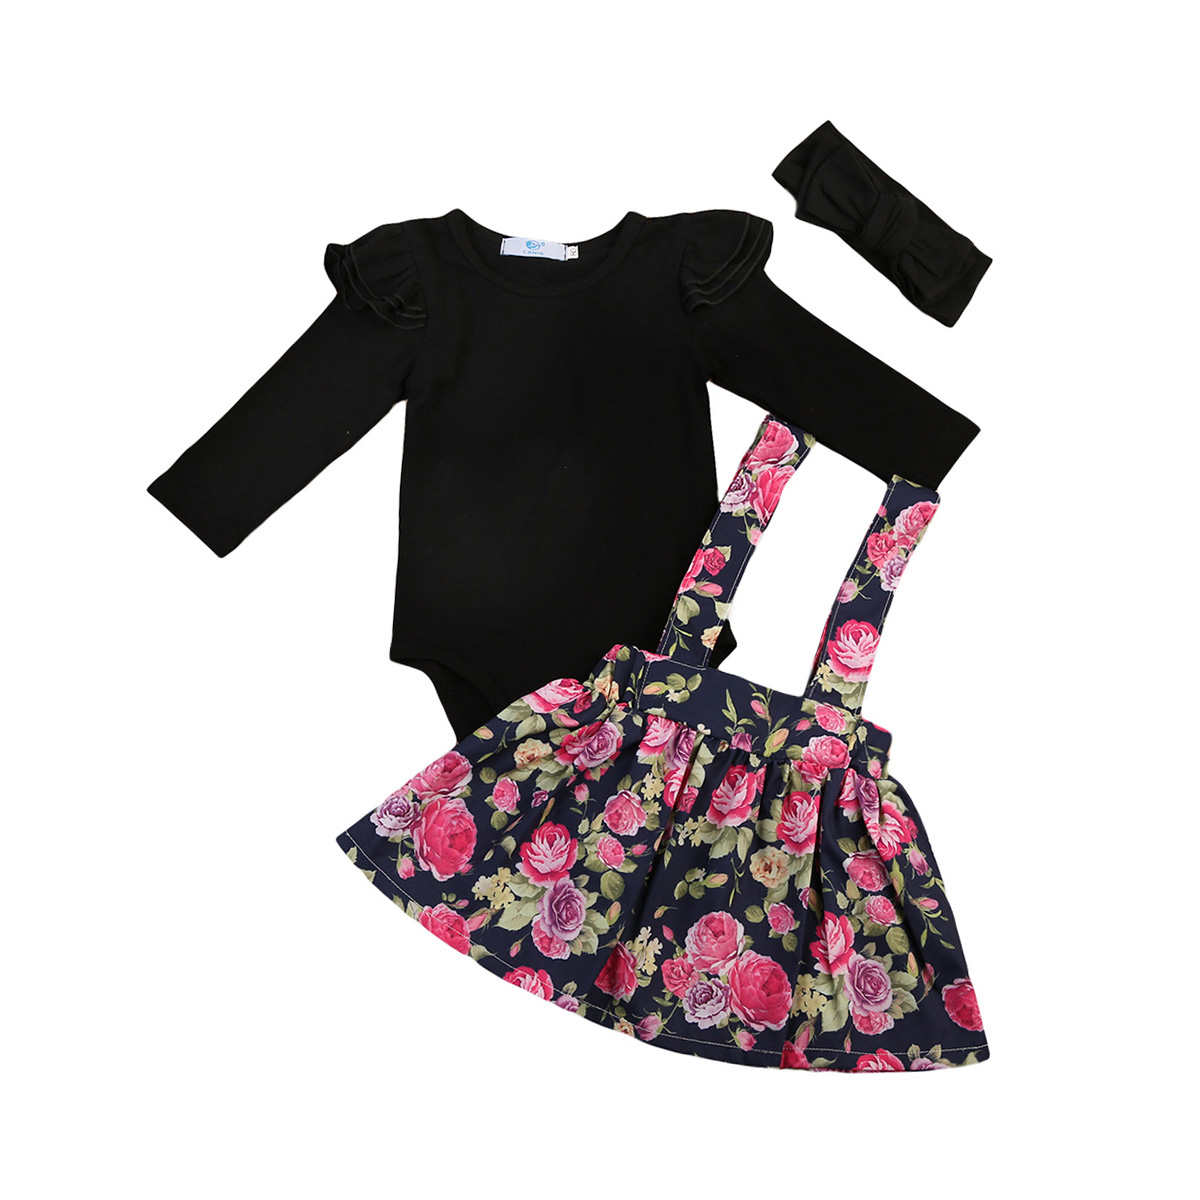 3Pcs Flower Girl Romper Infant Baby Tops Tutu Skirt Kids Outfit Set Toddler Children Girls Floral Skirts Solid Yop Clothing Set princess toddler kids baby girl clothes sets sequins tops vest tutu skirts cute ball headband 3pcs outfits set girls clothing